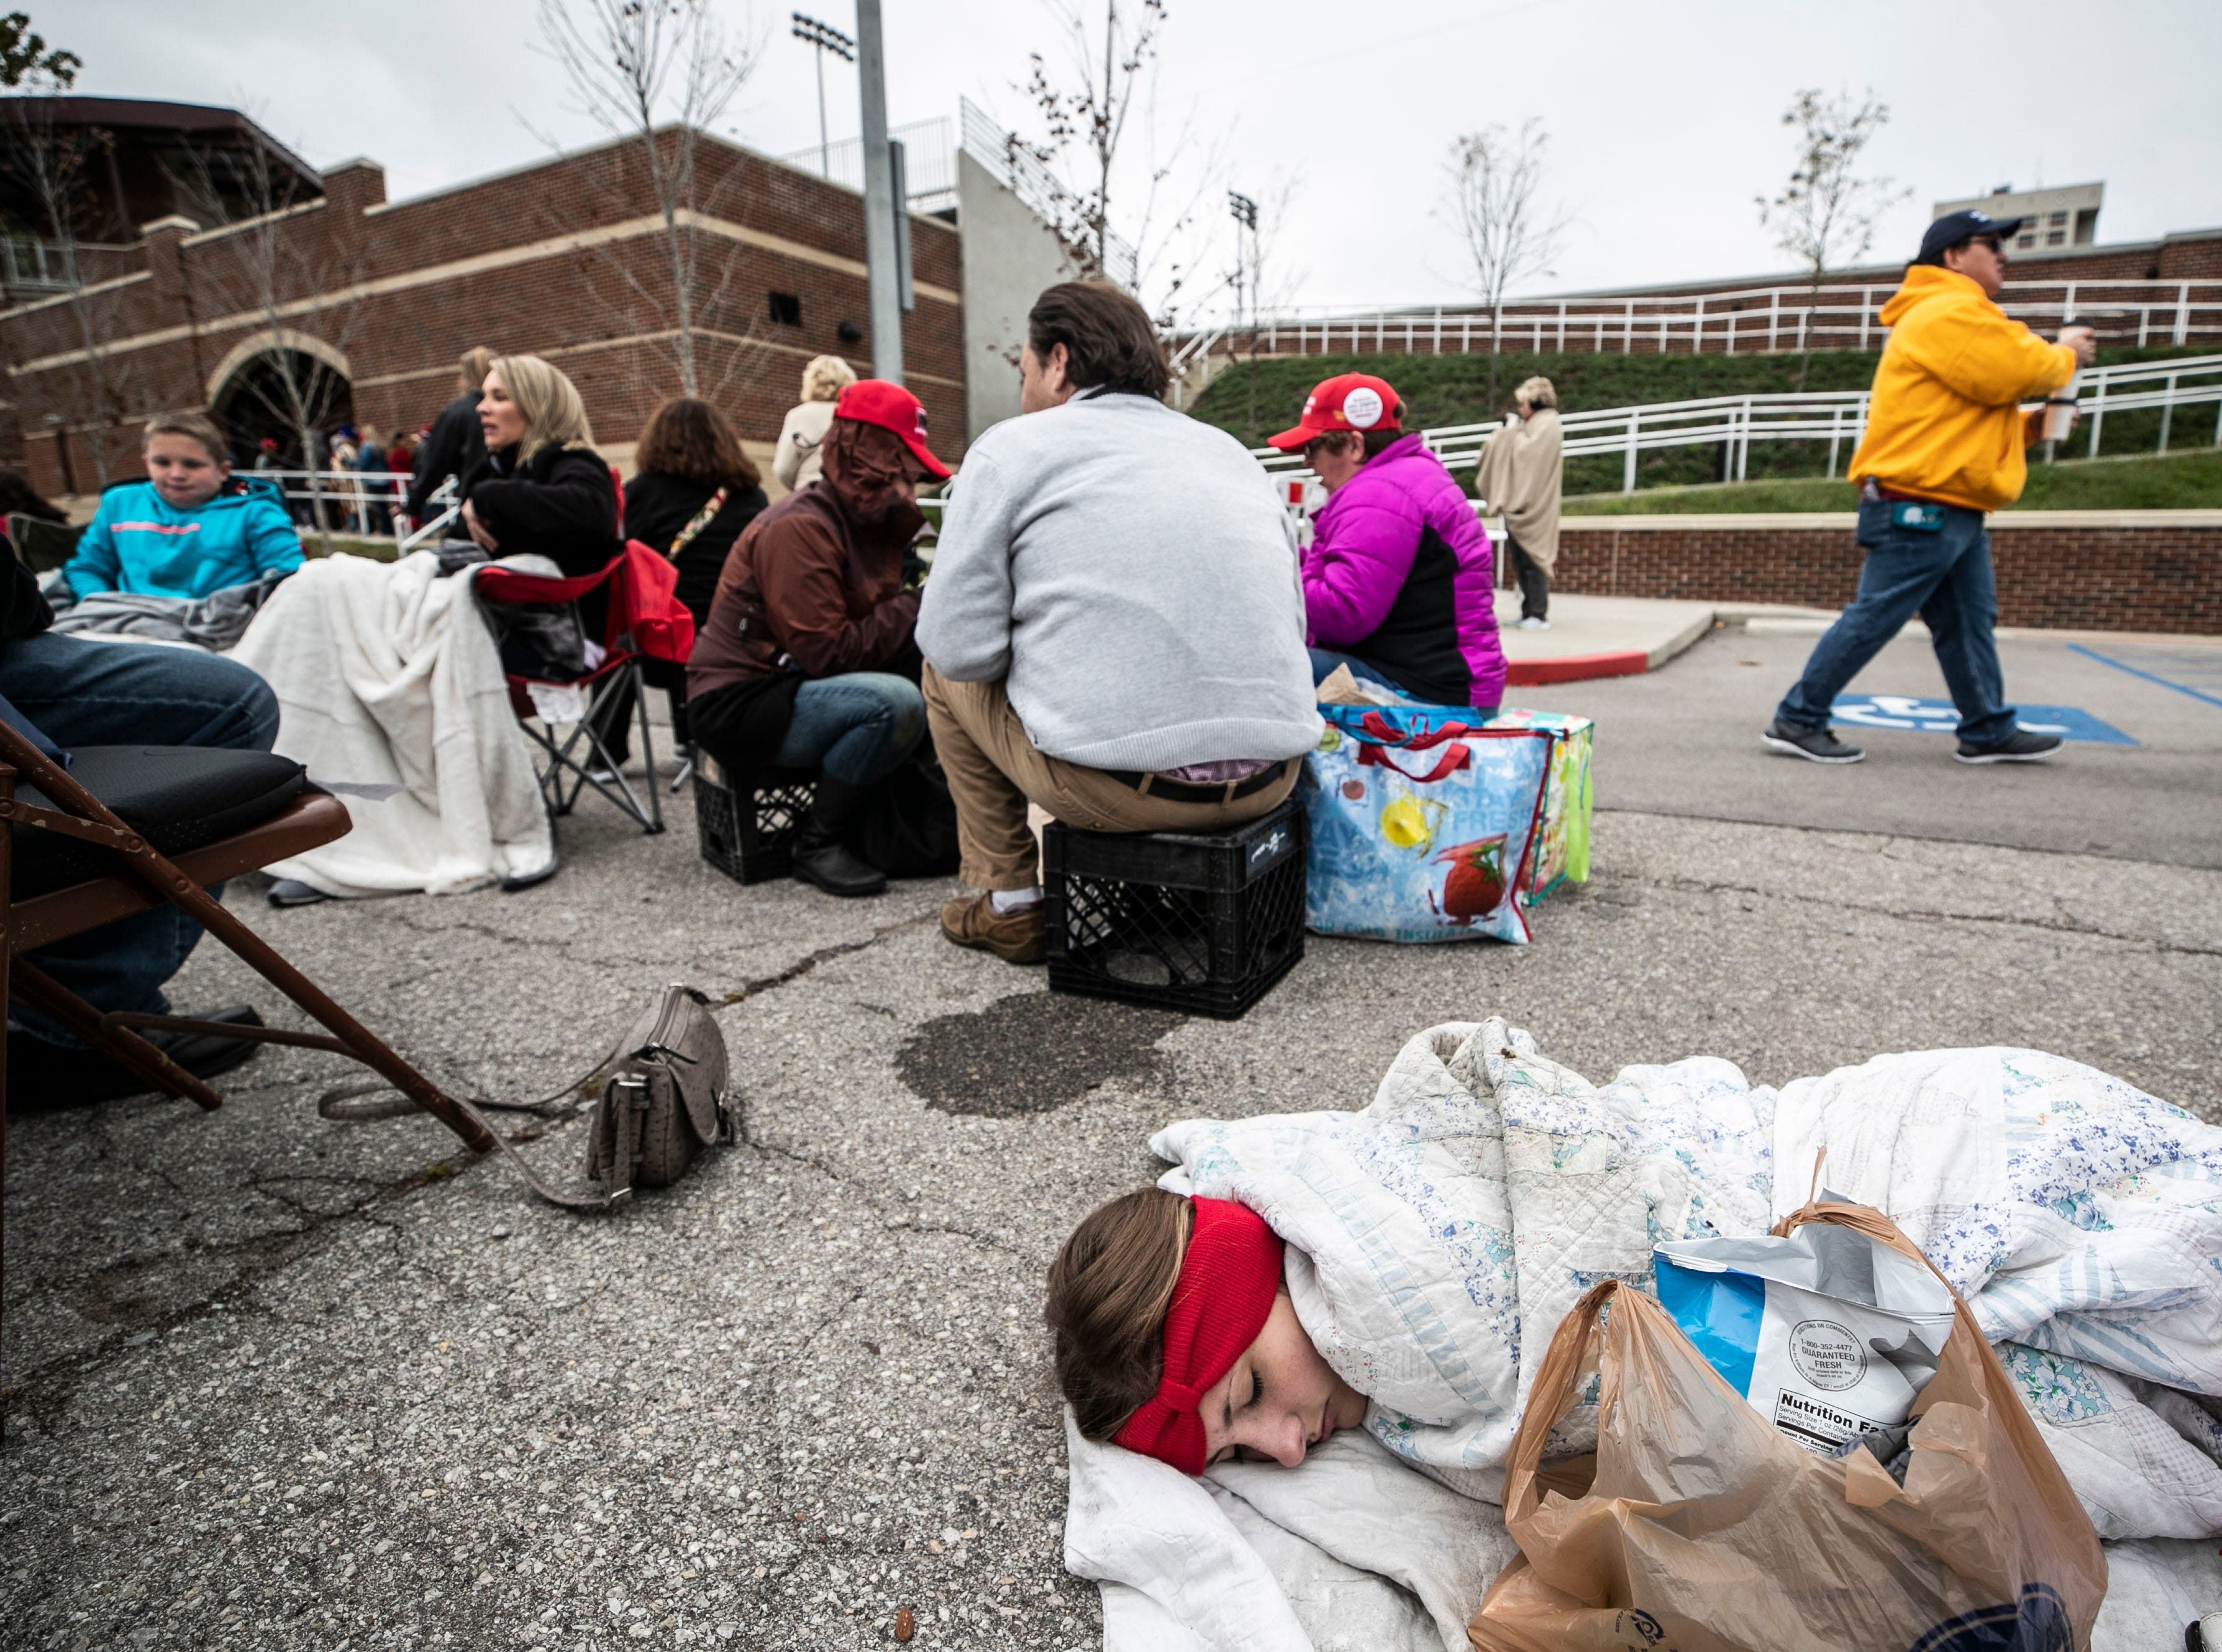 Seventeen-year-old Lexi Lockard sleeps wrapped up in a blanket in a parking lot outside the Alumni Coliseum for the speech of President Donald Trump Saturday night.